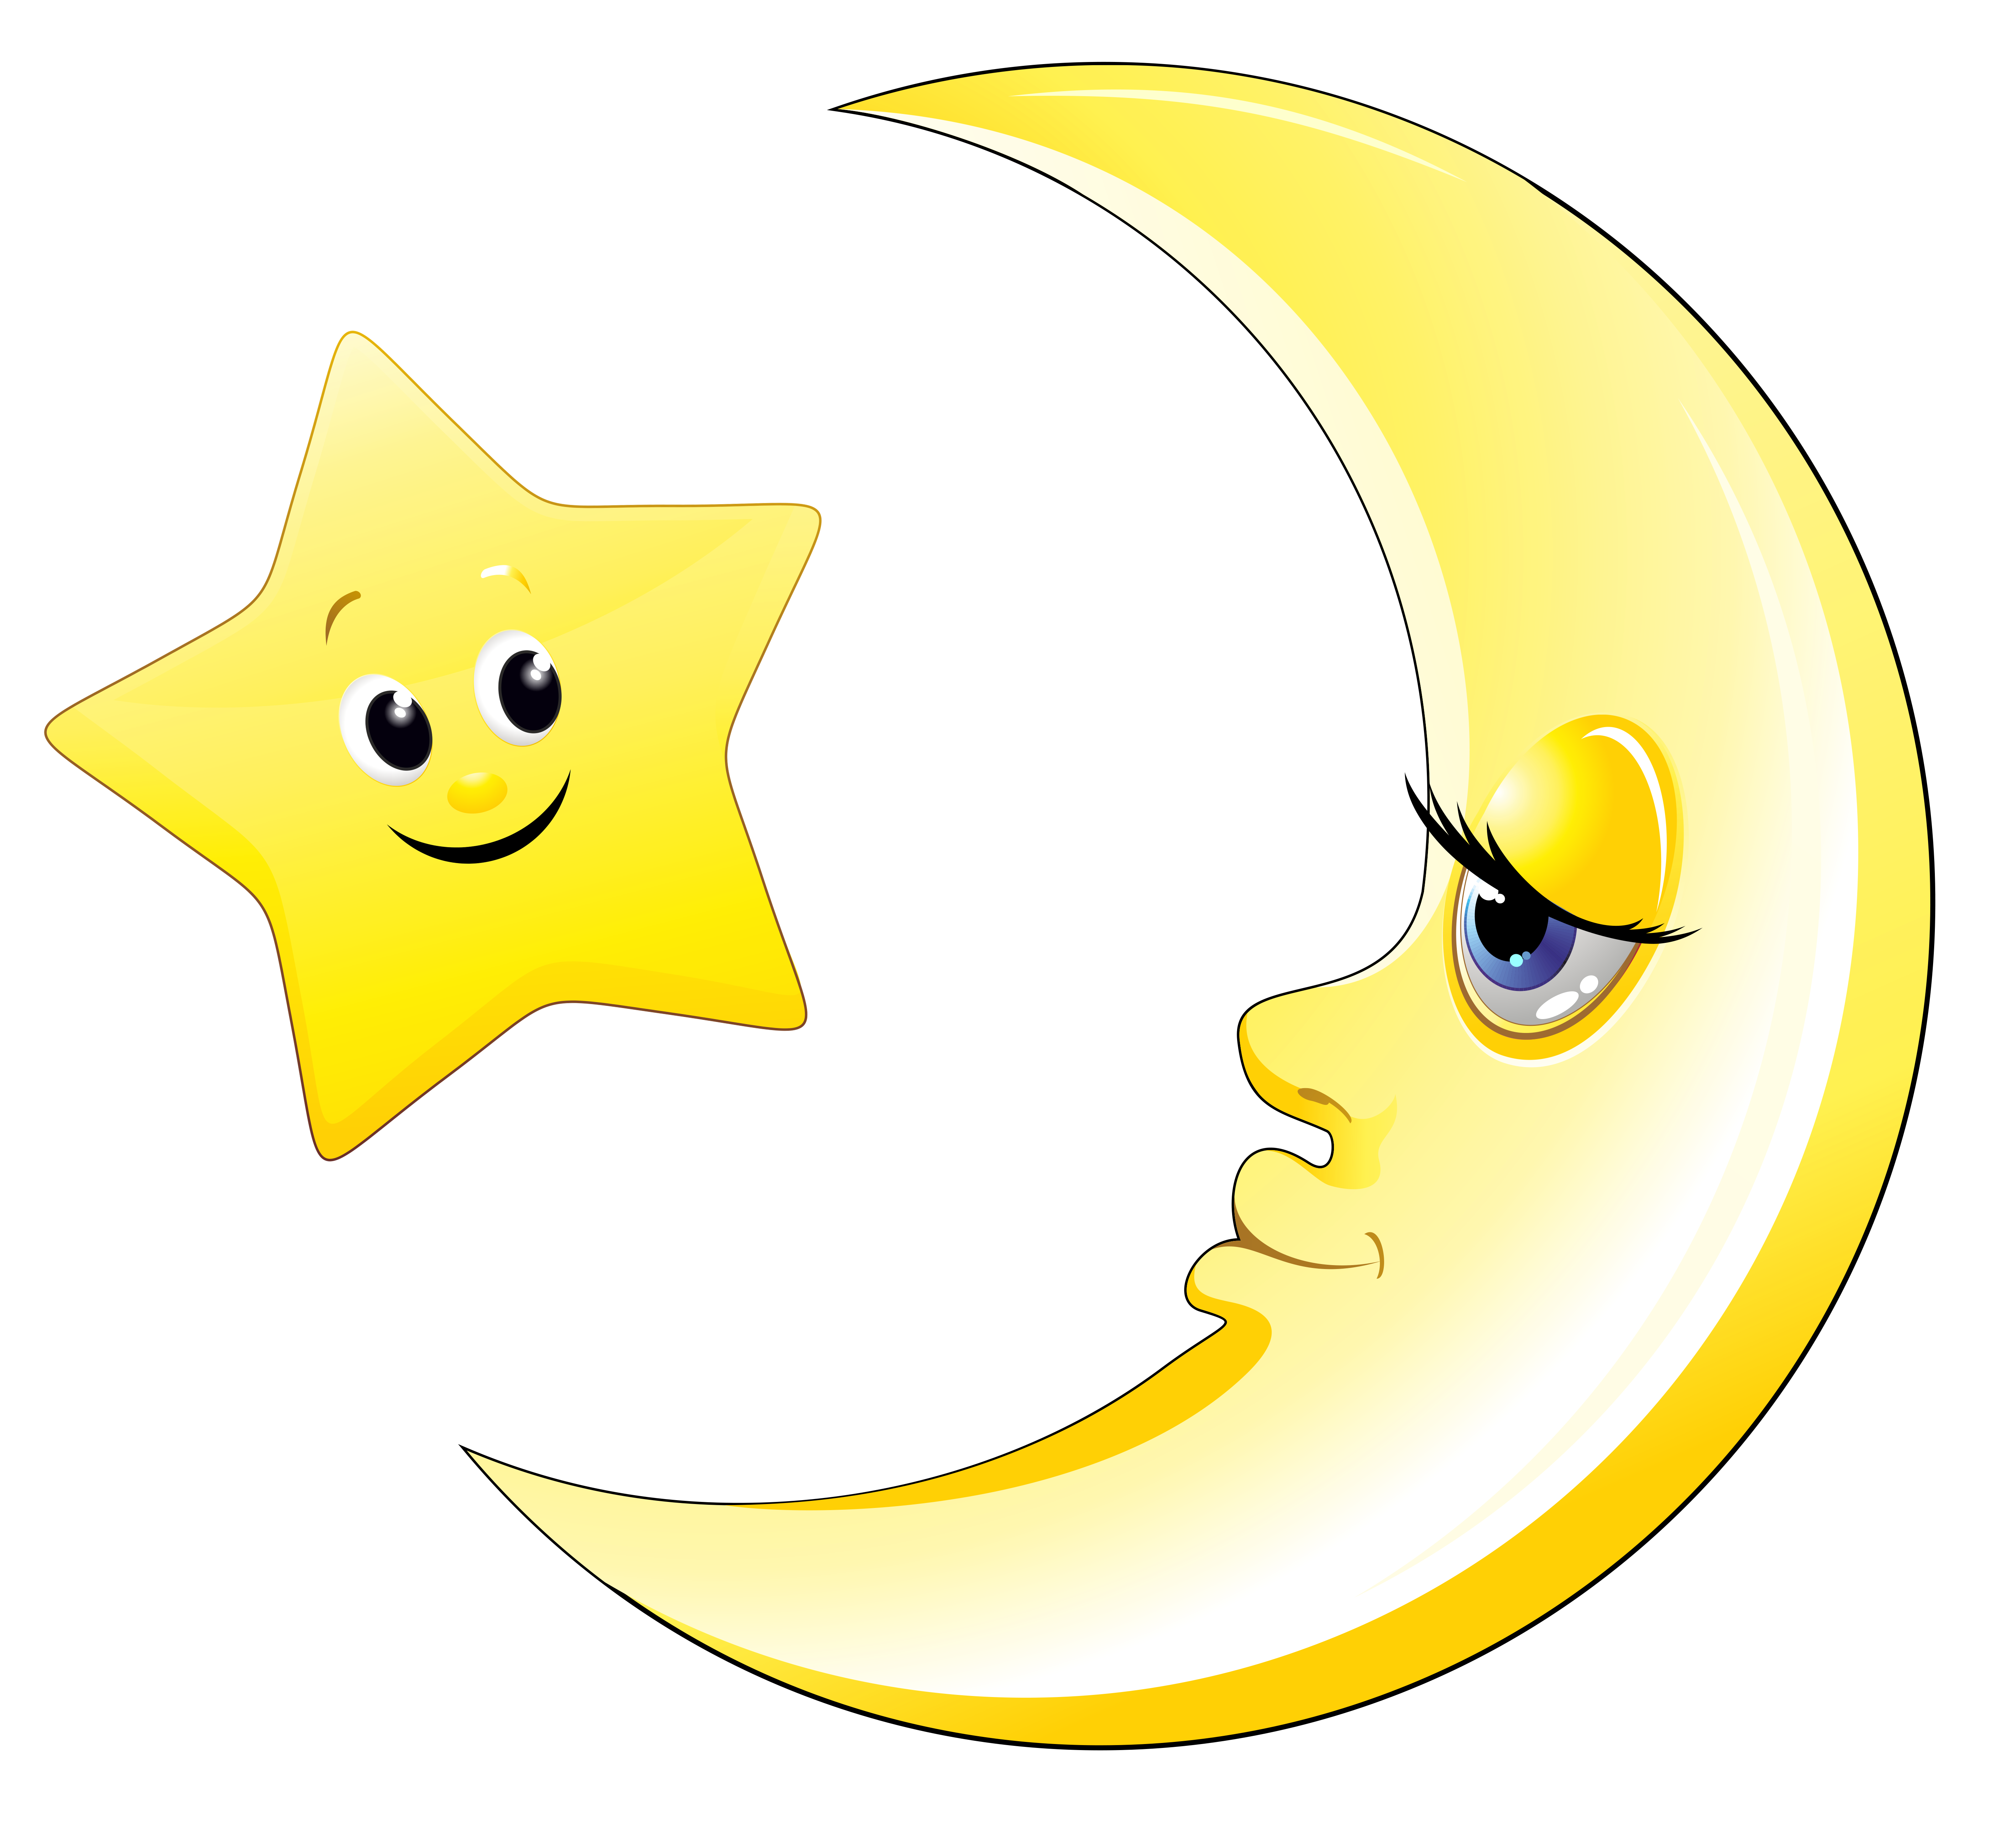 Transparent cute and star. Clipart moon yellow